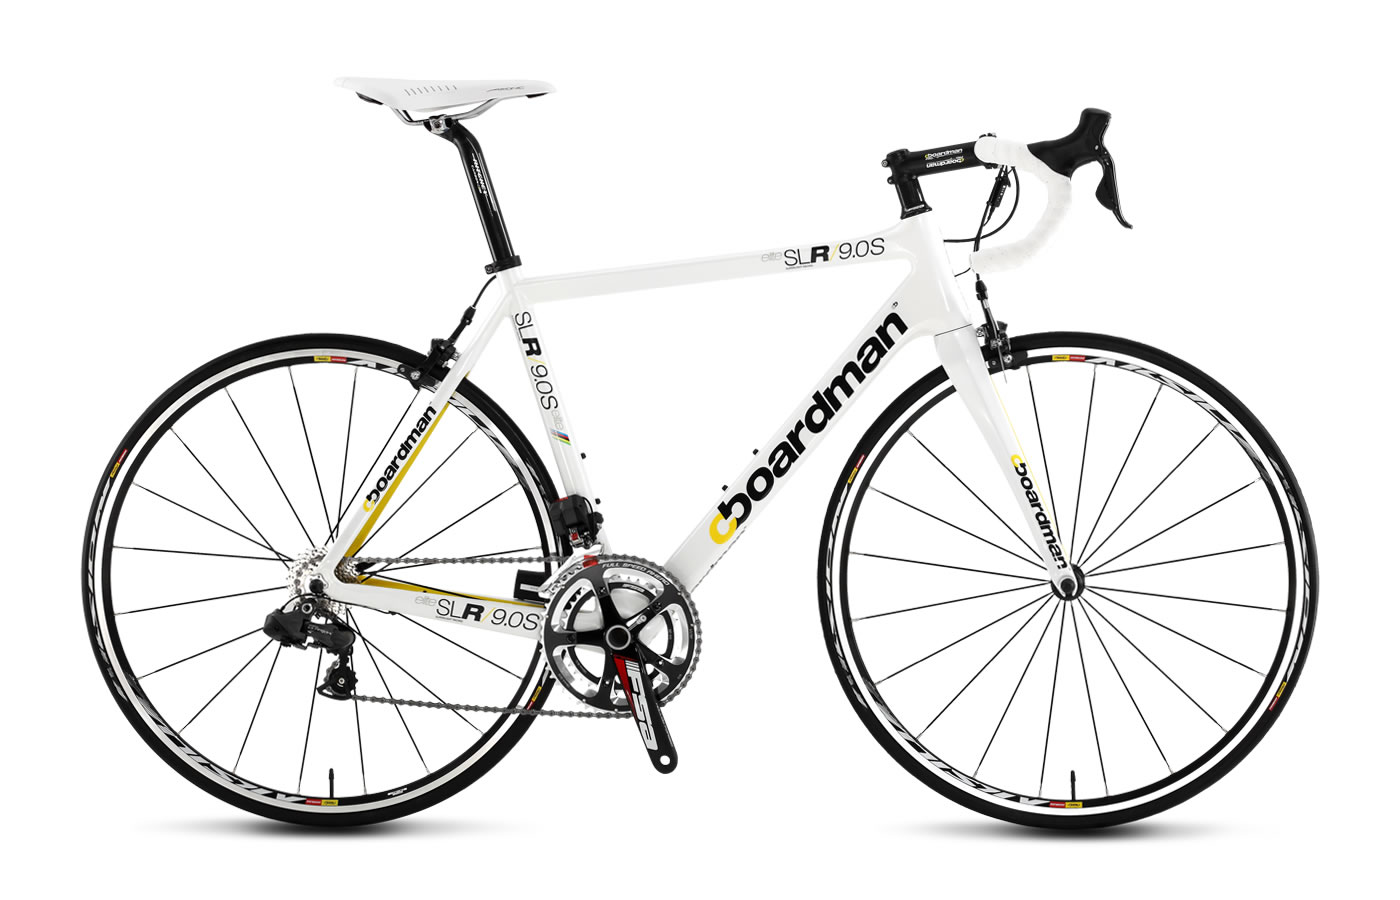 Boardman Road Sport Bike 2016 - 51.5, 53, 57.5cm Frames ...